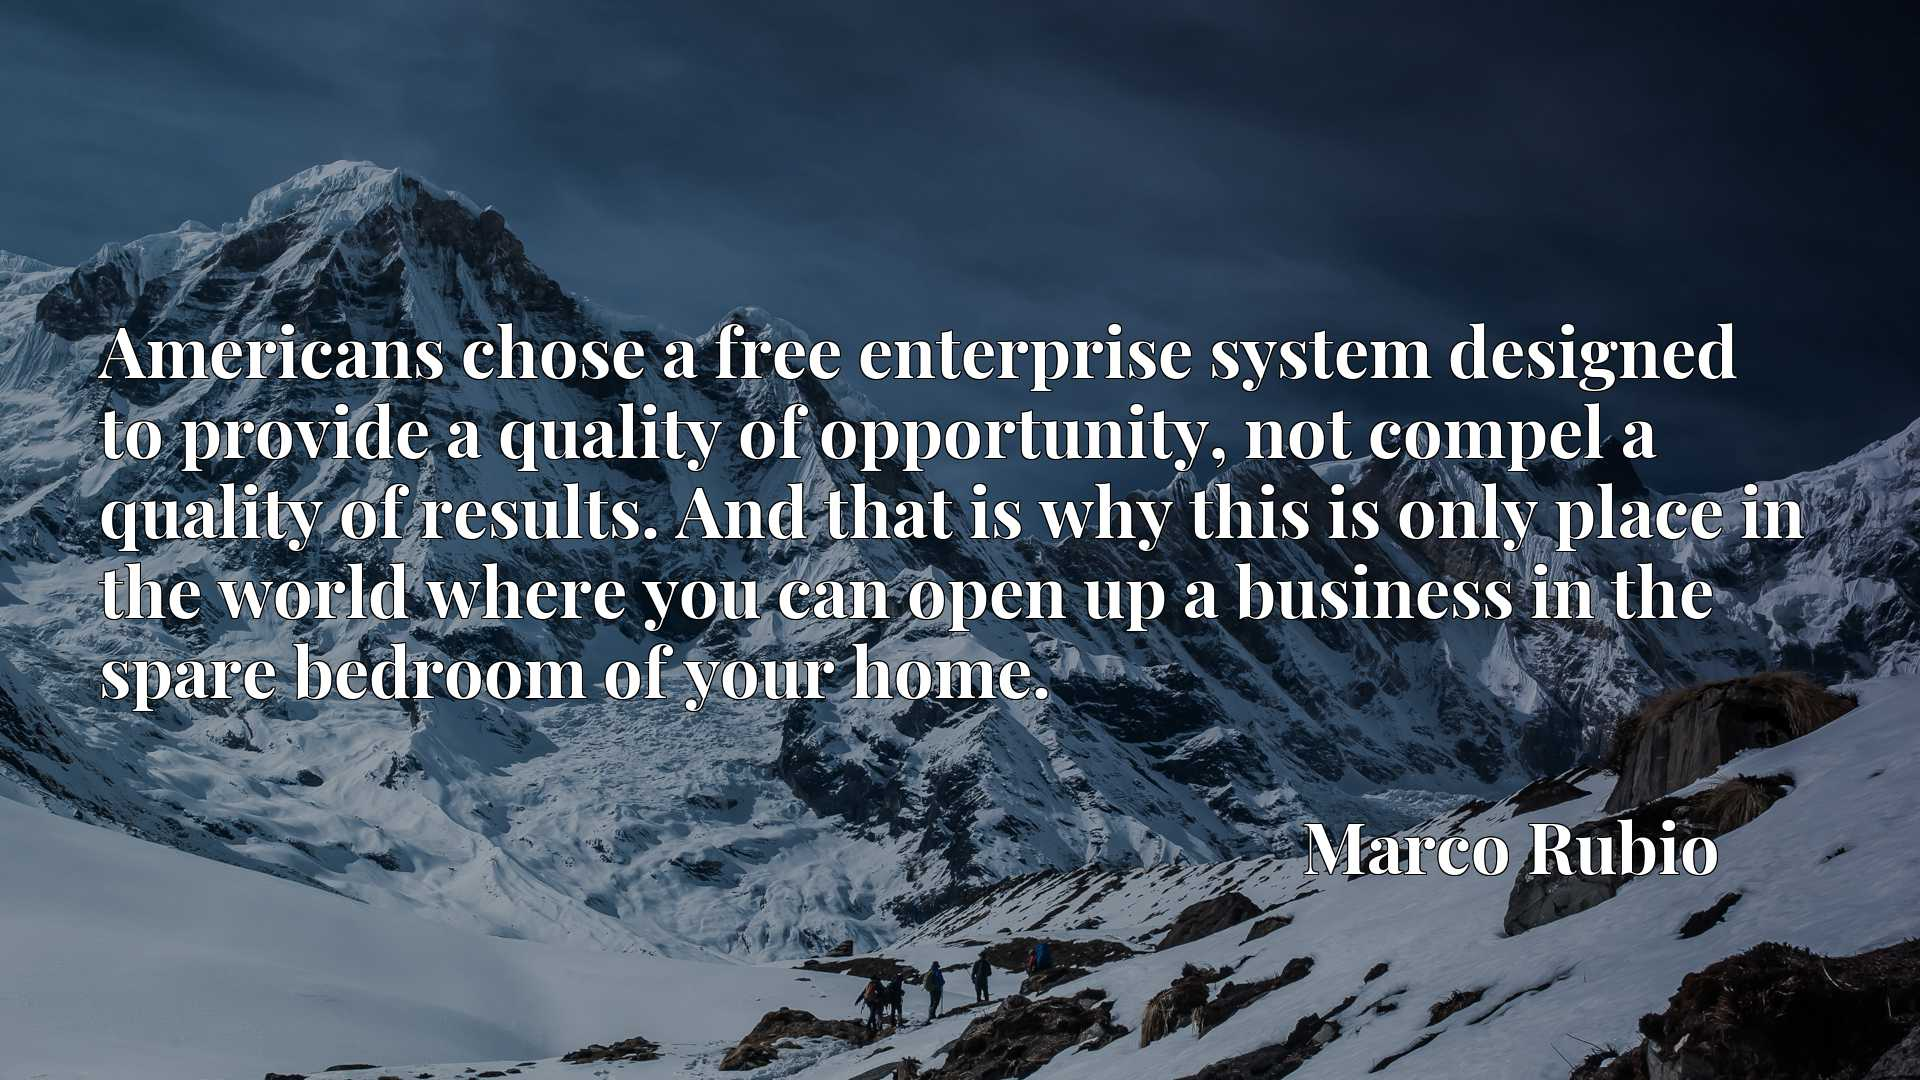 Americans chose a free enterprise system designed to provide a quality of opportunity, not compel a quality of results. And that is why this is only place in the world where you can open up a business in the spare bedroom of your home.